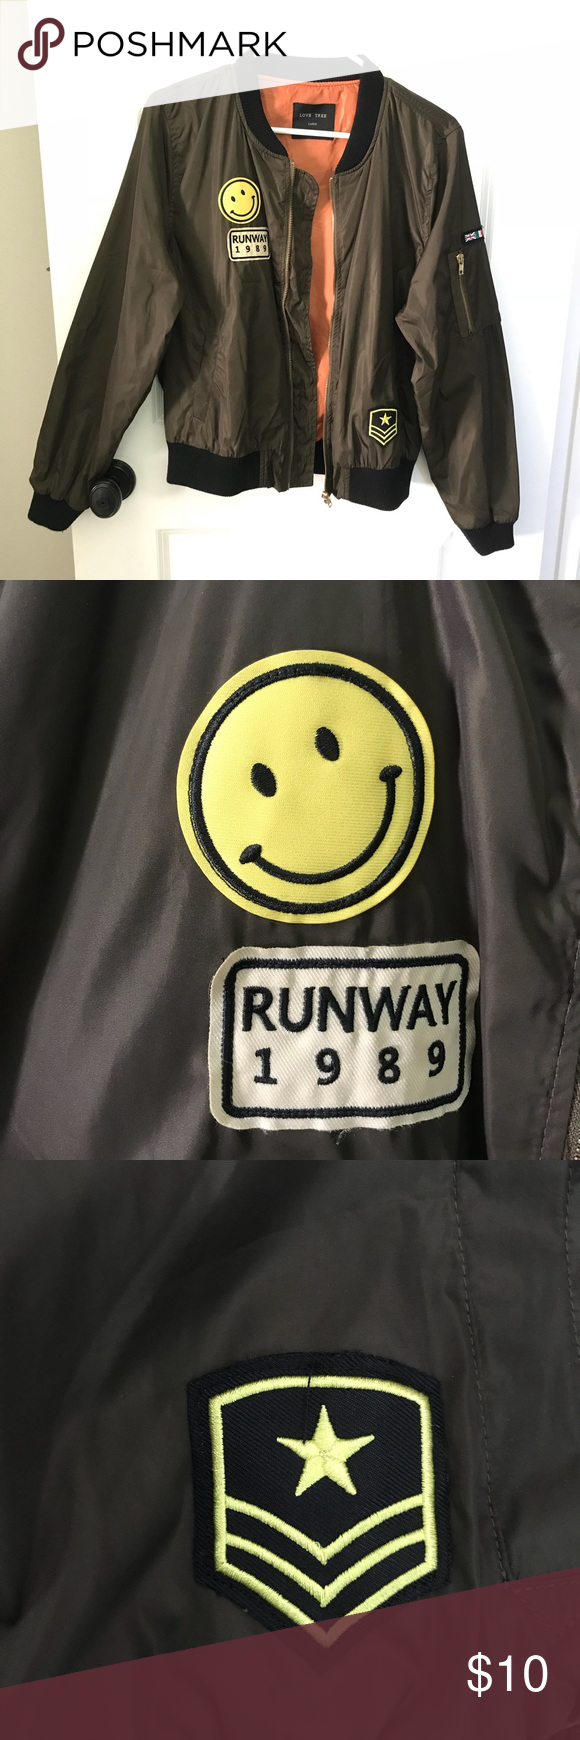 755fe2f0078 Bomber Jacket w  Patches An olive green bomber jacket with super cute  patches! Lined on the inside in orange. Would look great styled with jeans.